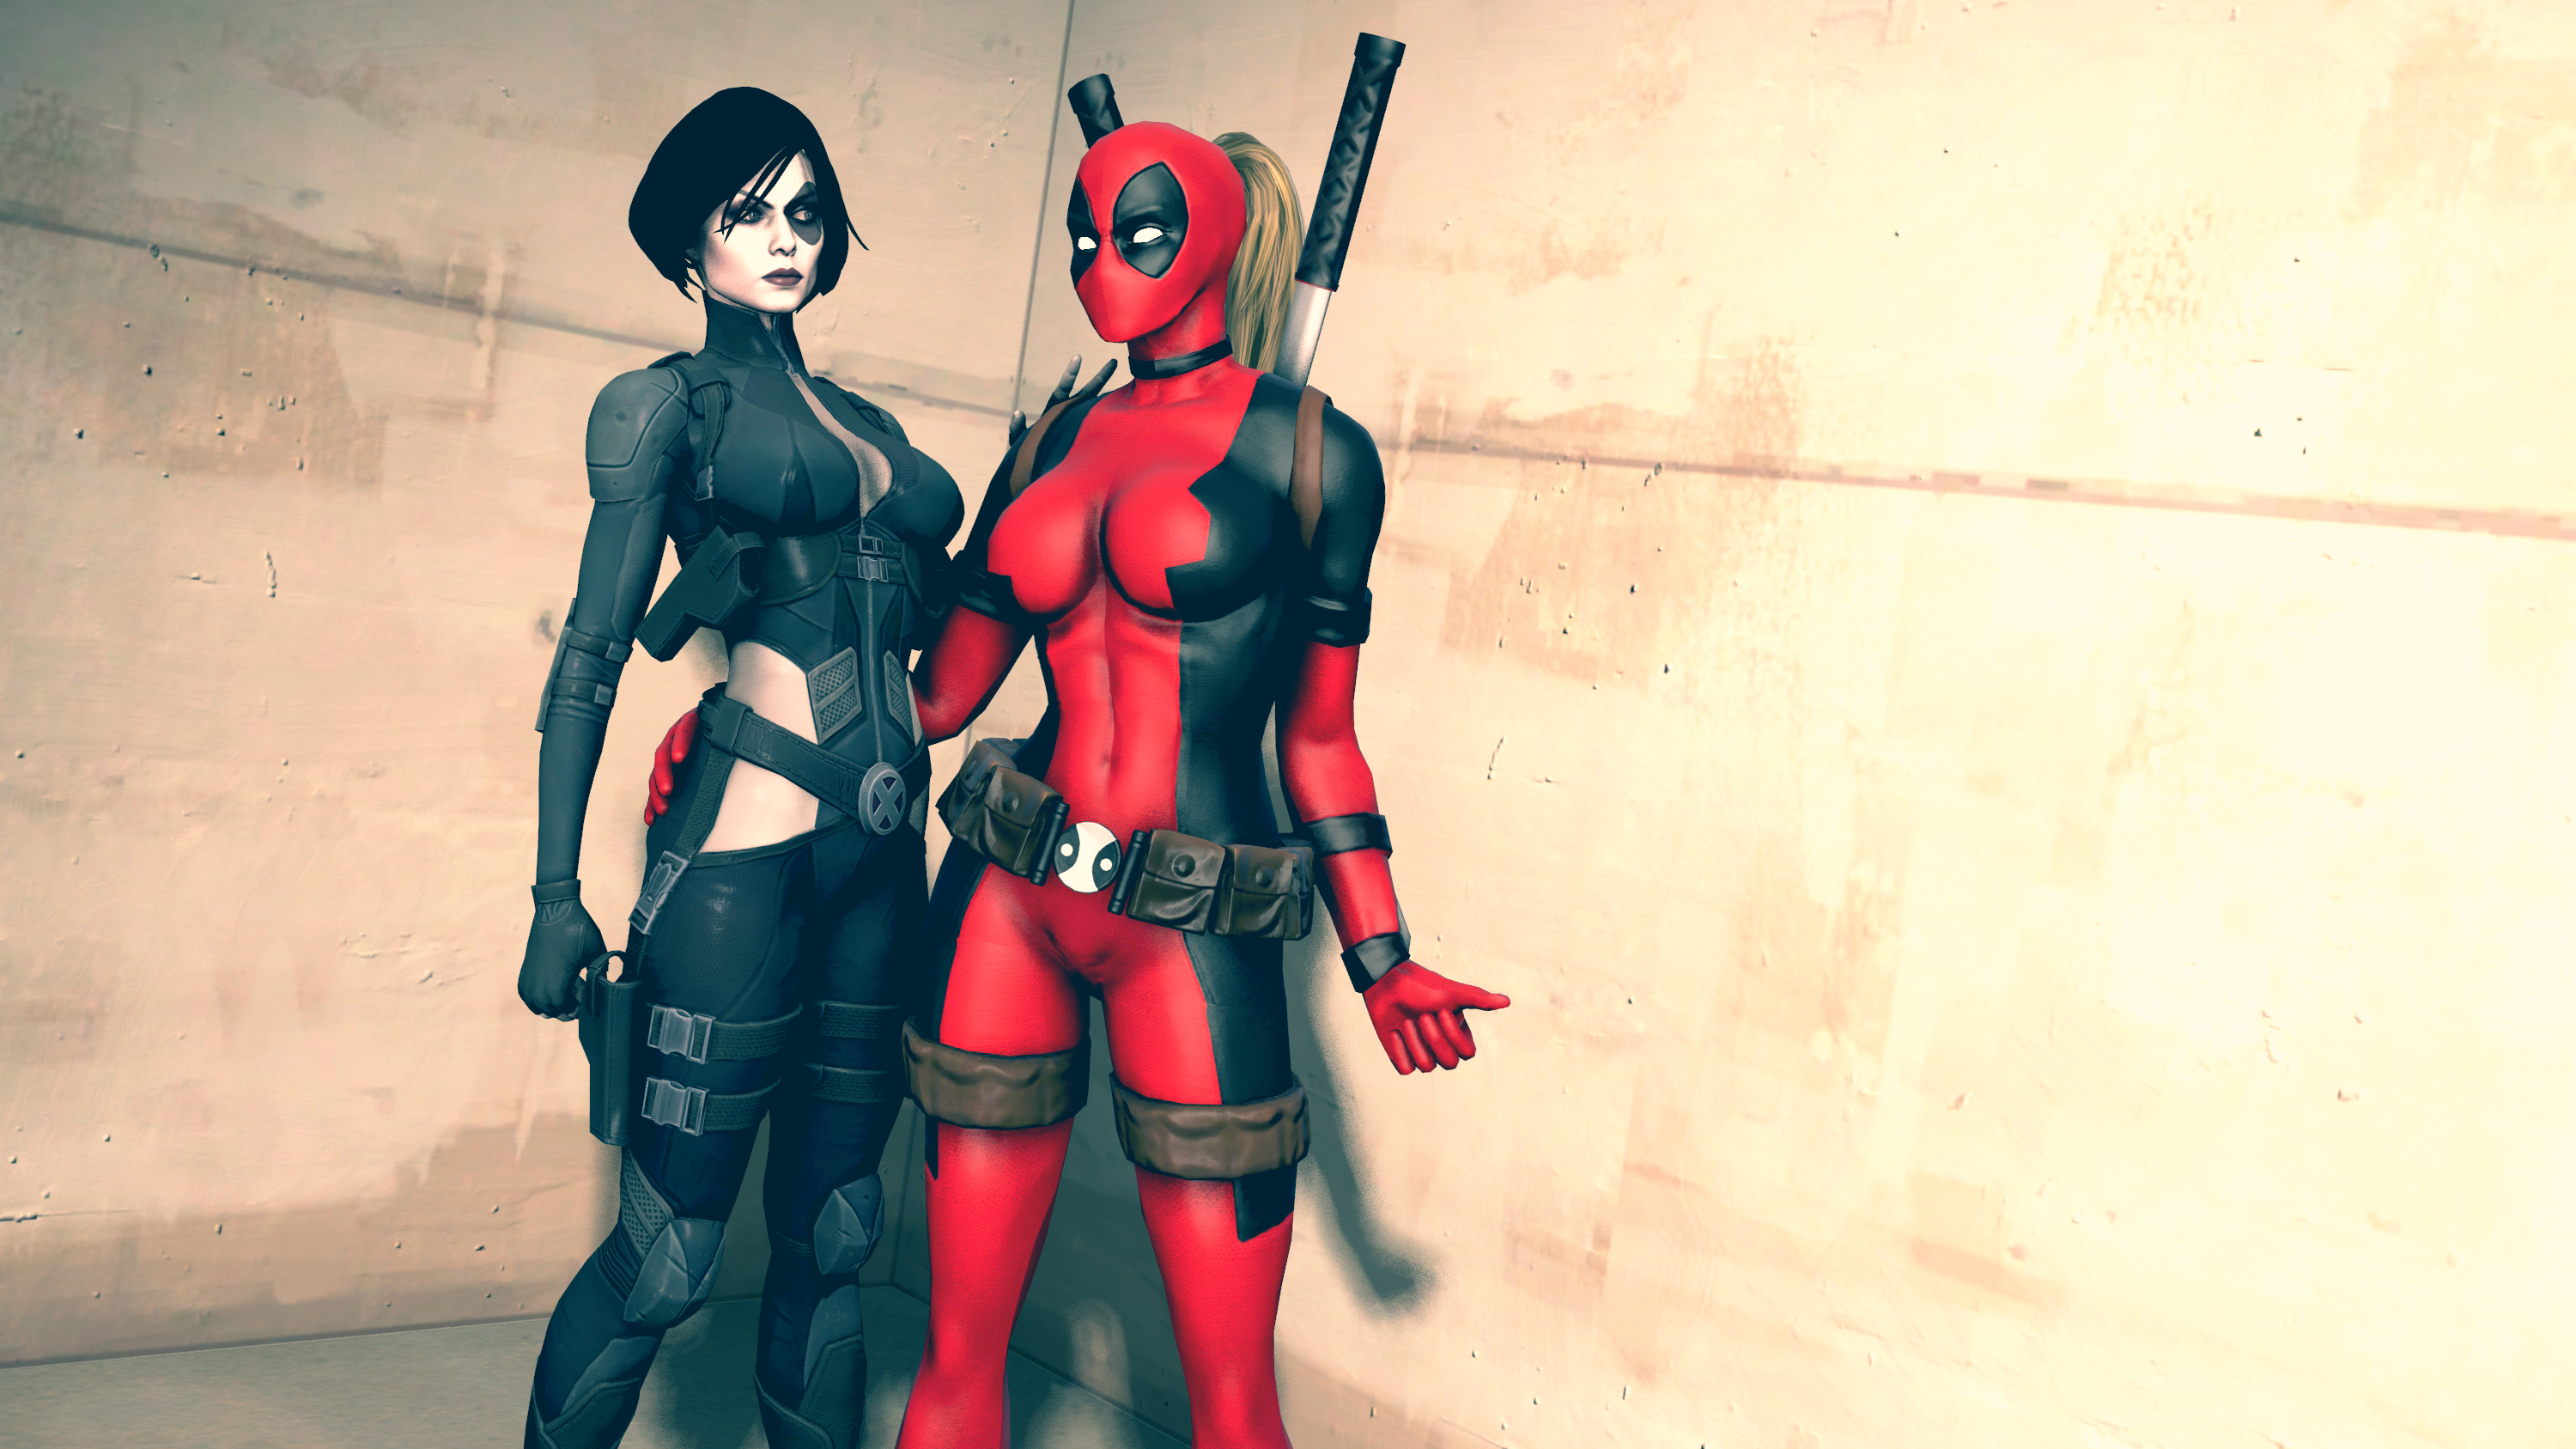 http://img2.goodfon.ru/original/3000x1687/9/56/lady-deadpool-marvel-comics.jpg